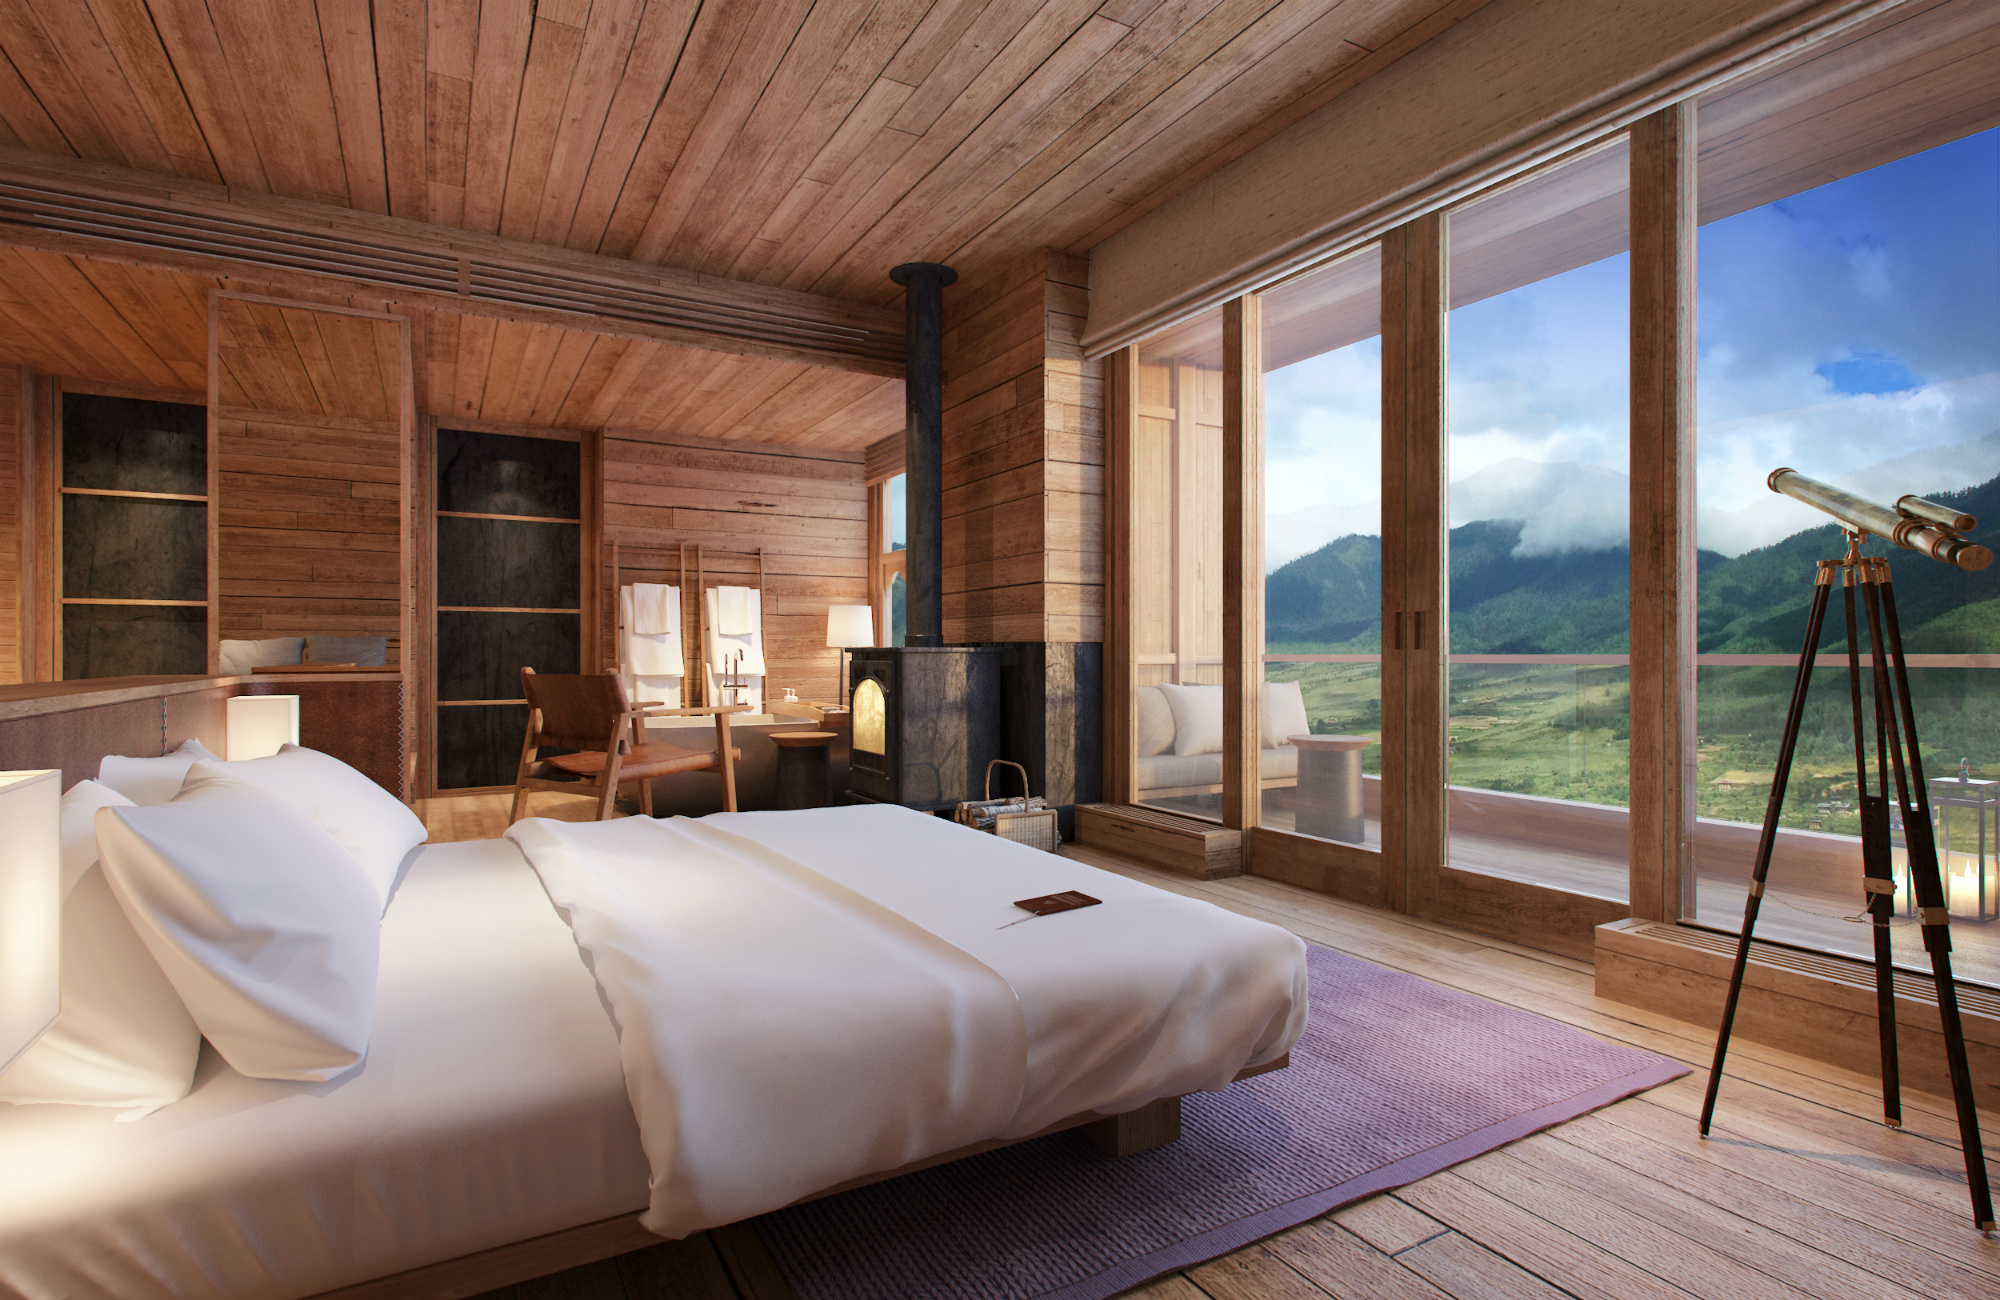 10 Luxury Hotels in India to look forward to in 2018